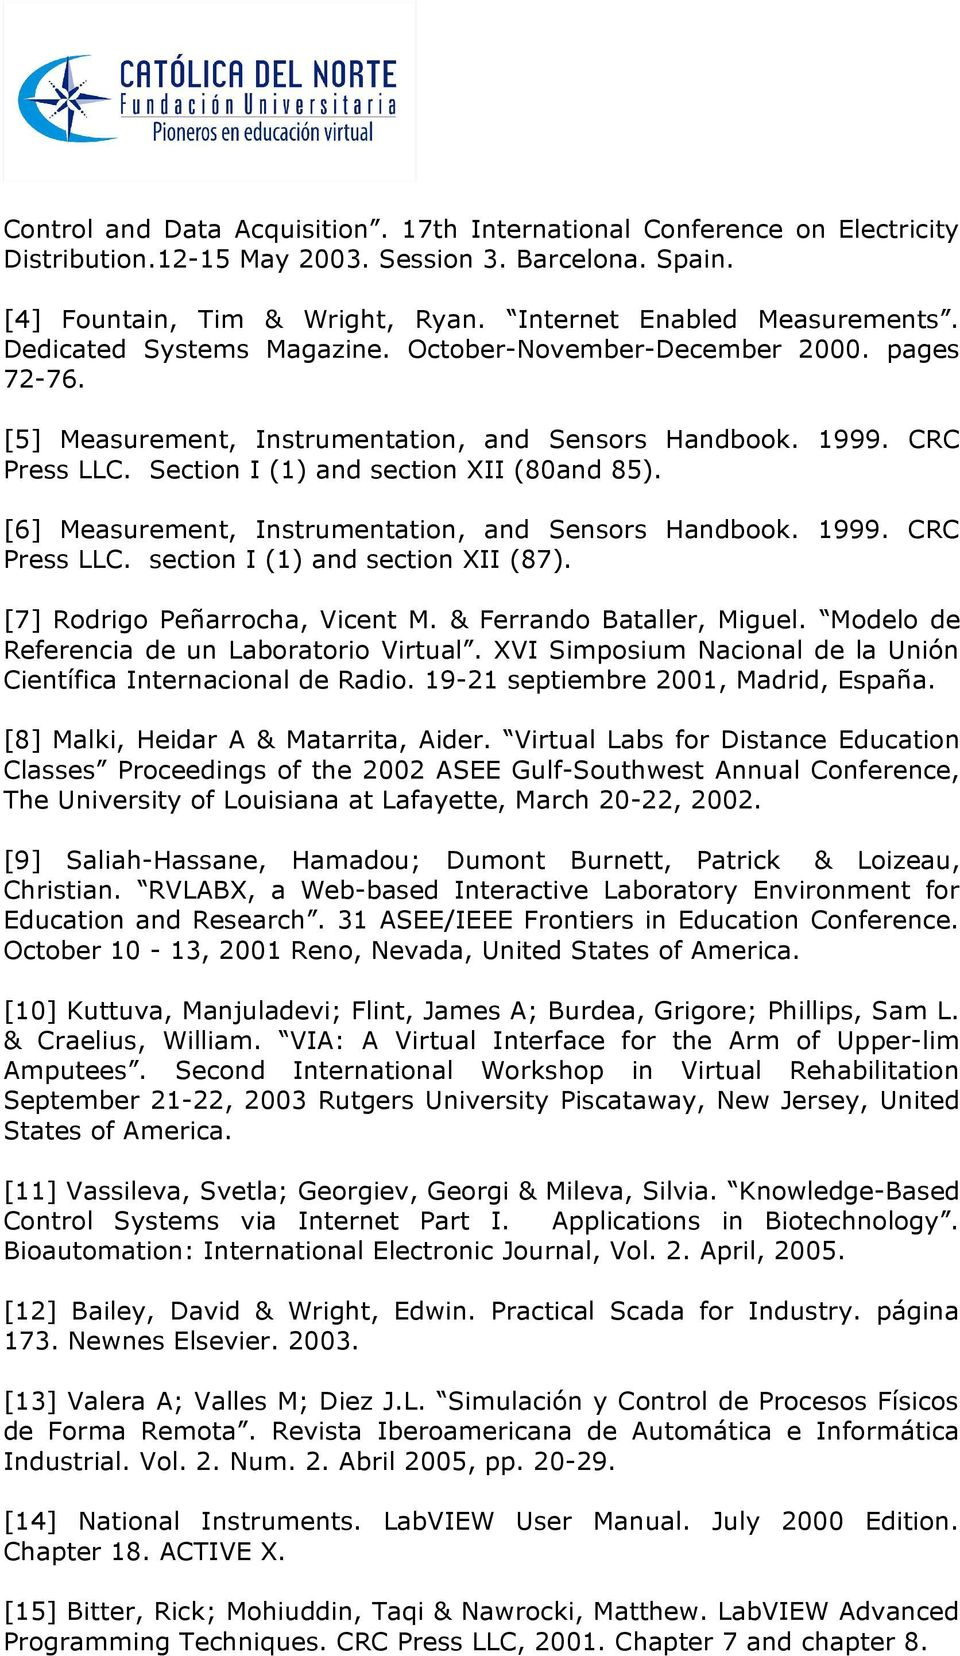 October-November-December 2000. pages 72-76. [5] Measurement, Instrumentation, and Sensors Handbook. 1999. CRC Press LLC. Section I (1) and section XII (80and 85).